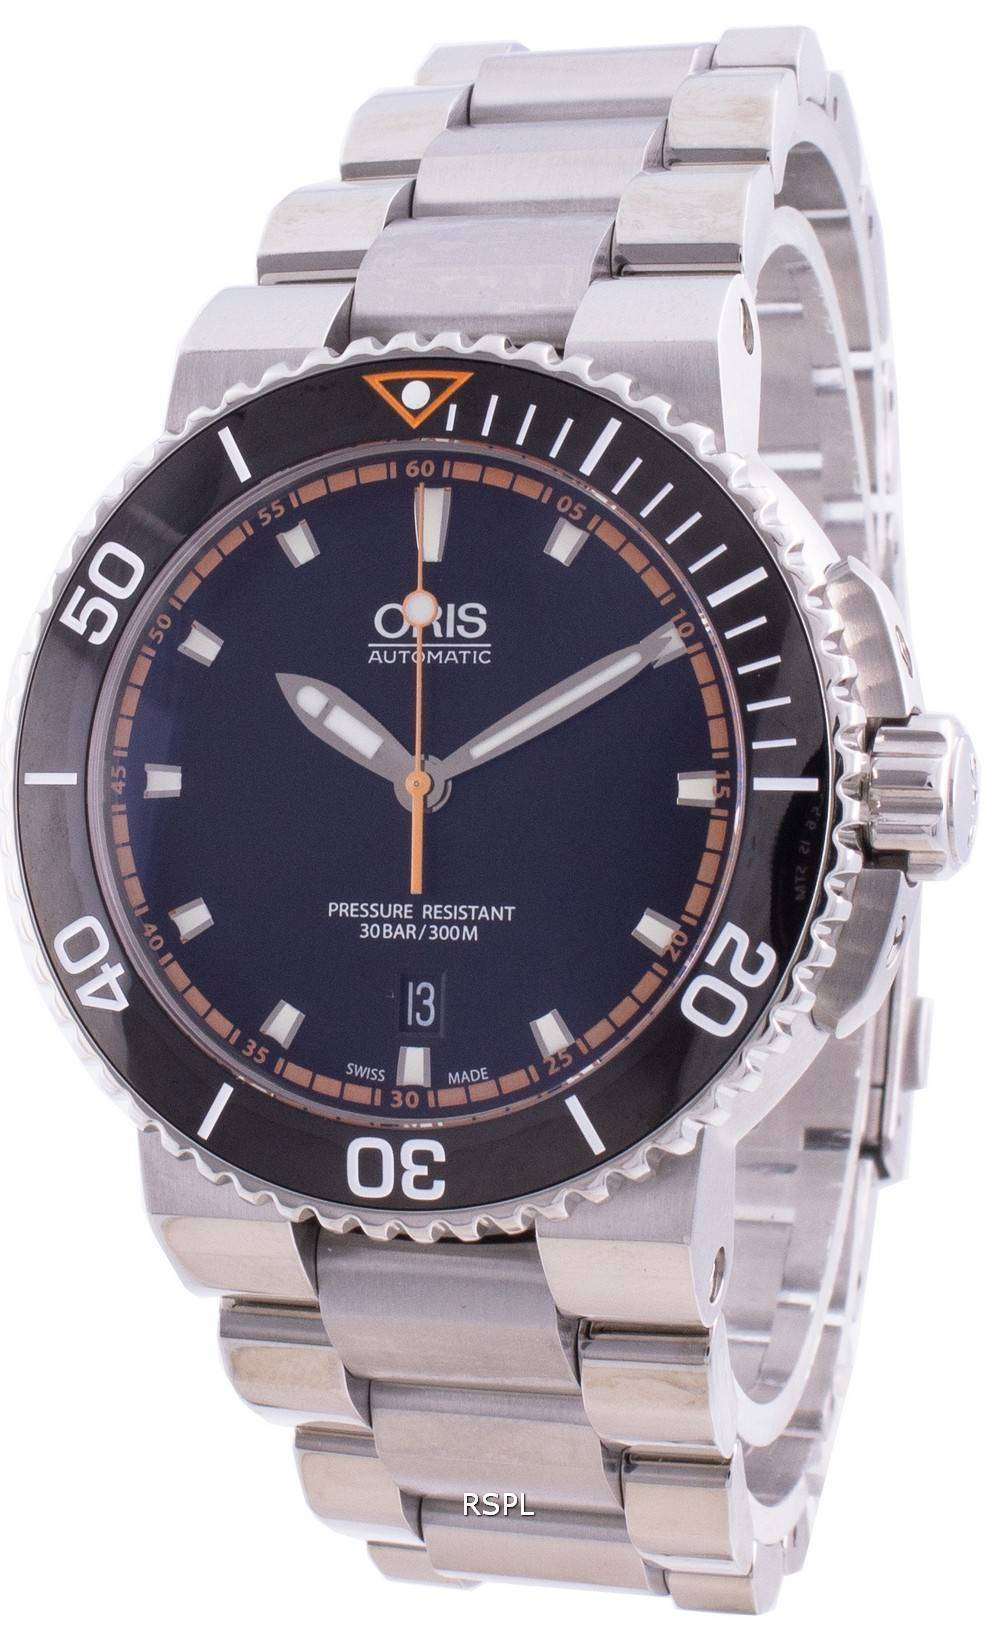 Oris Aquis Date 01-733-7653-4128-07-8-26-01PEB Automatic 300M Men's Watch